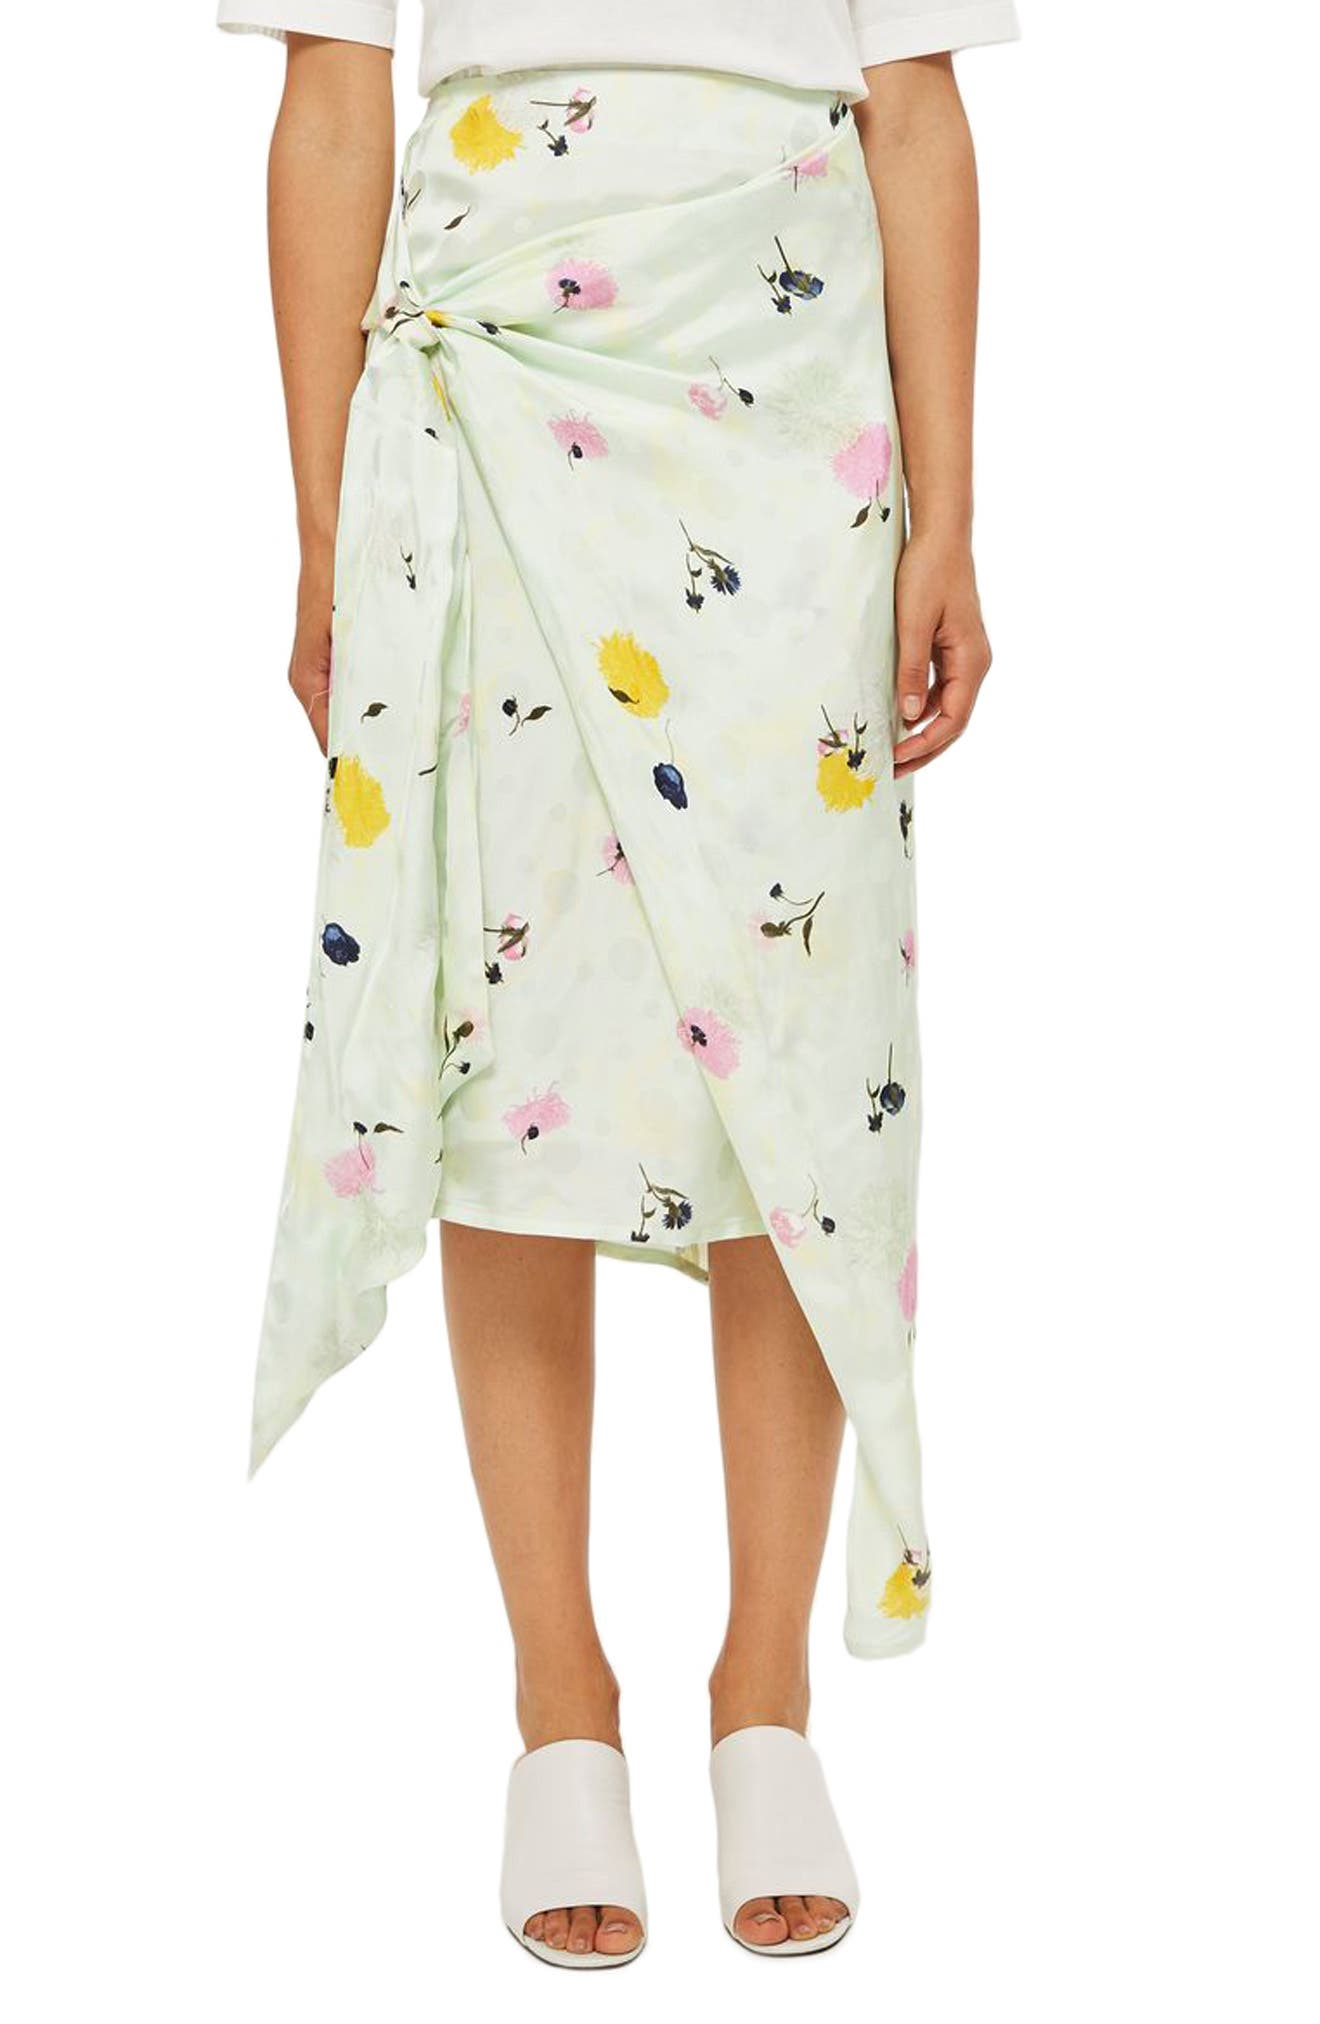 Topshop Boutique Marble Bloom Print Sash Skirt